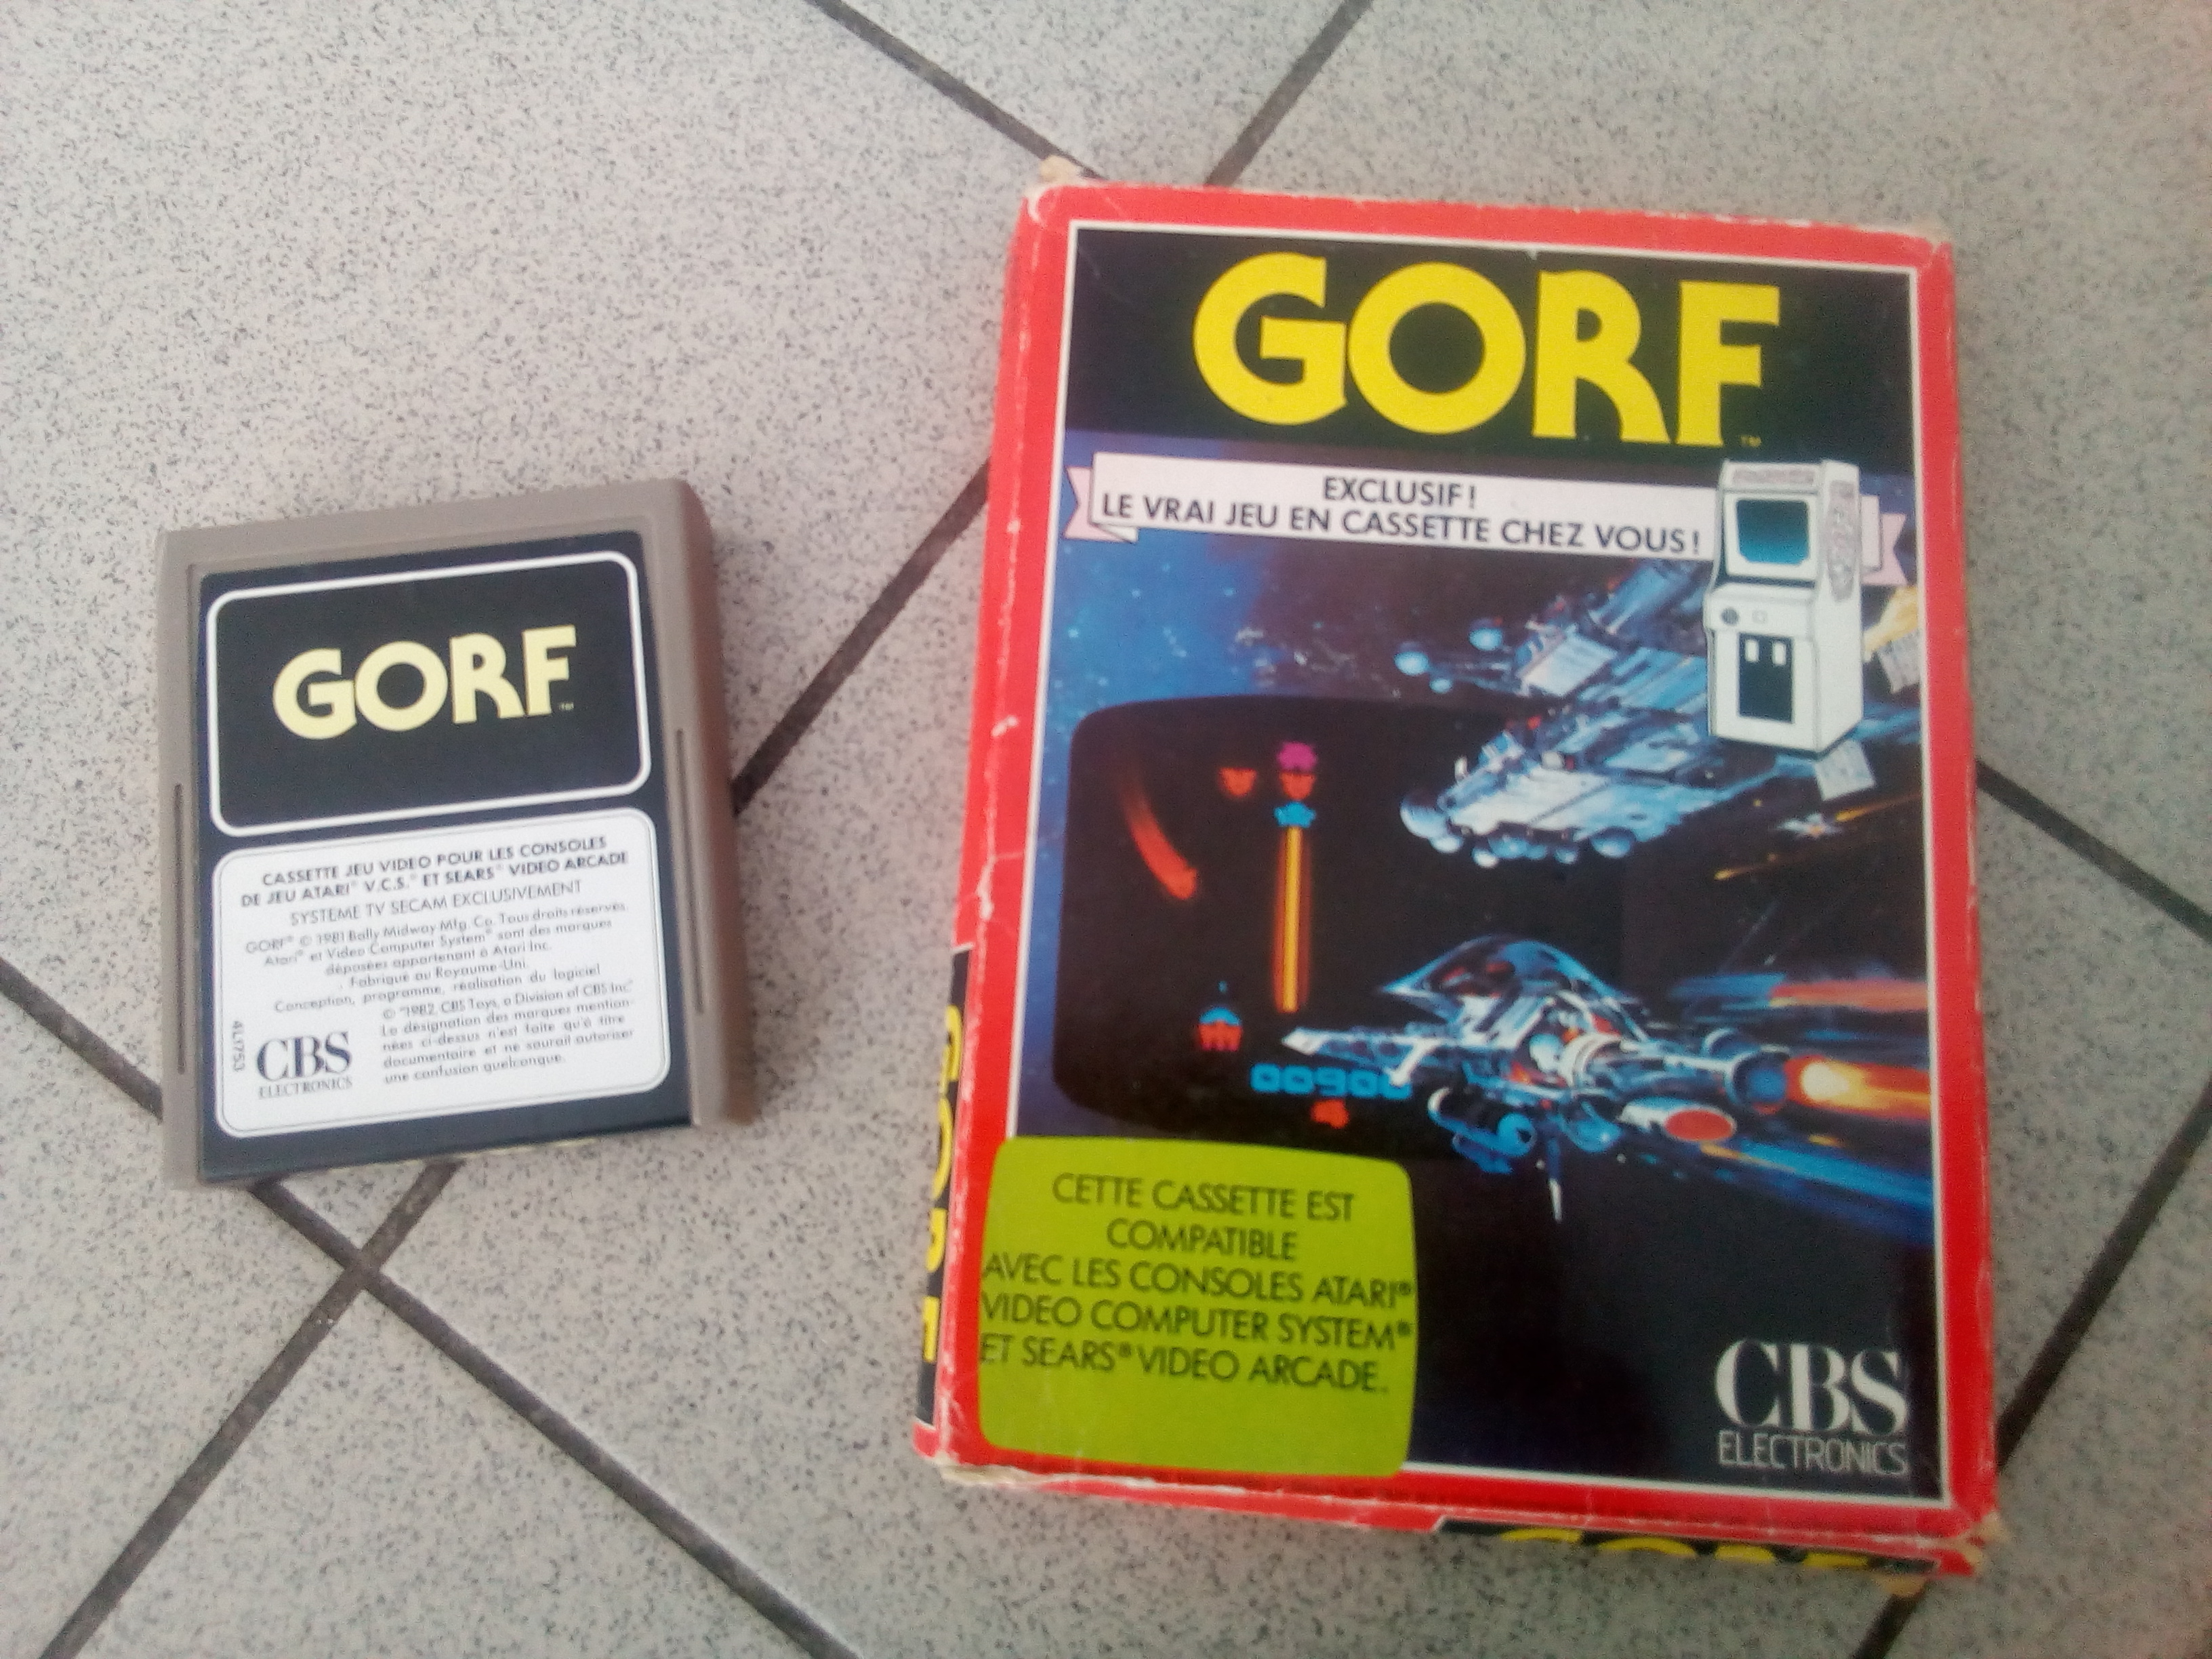 maxfly shop (Maj 07/05) coleco, atari, big box... etc 181023012747737956